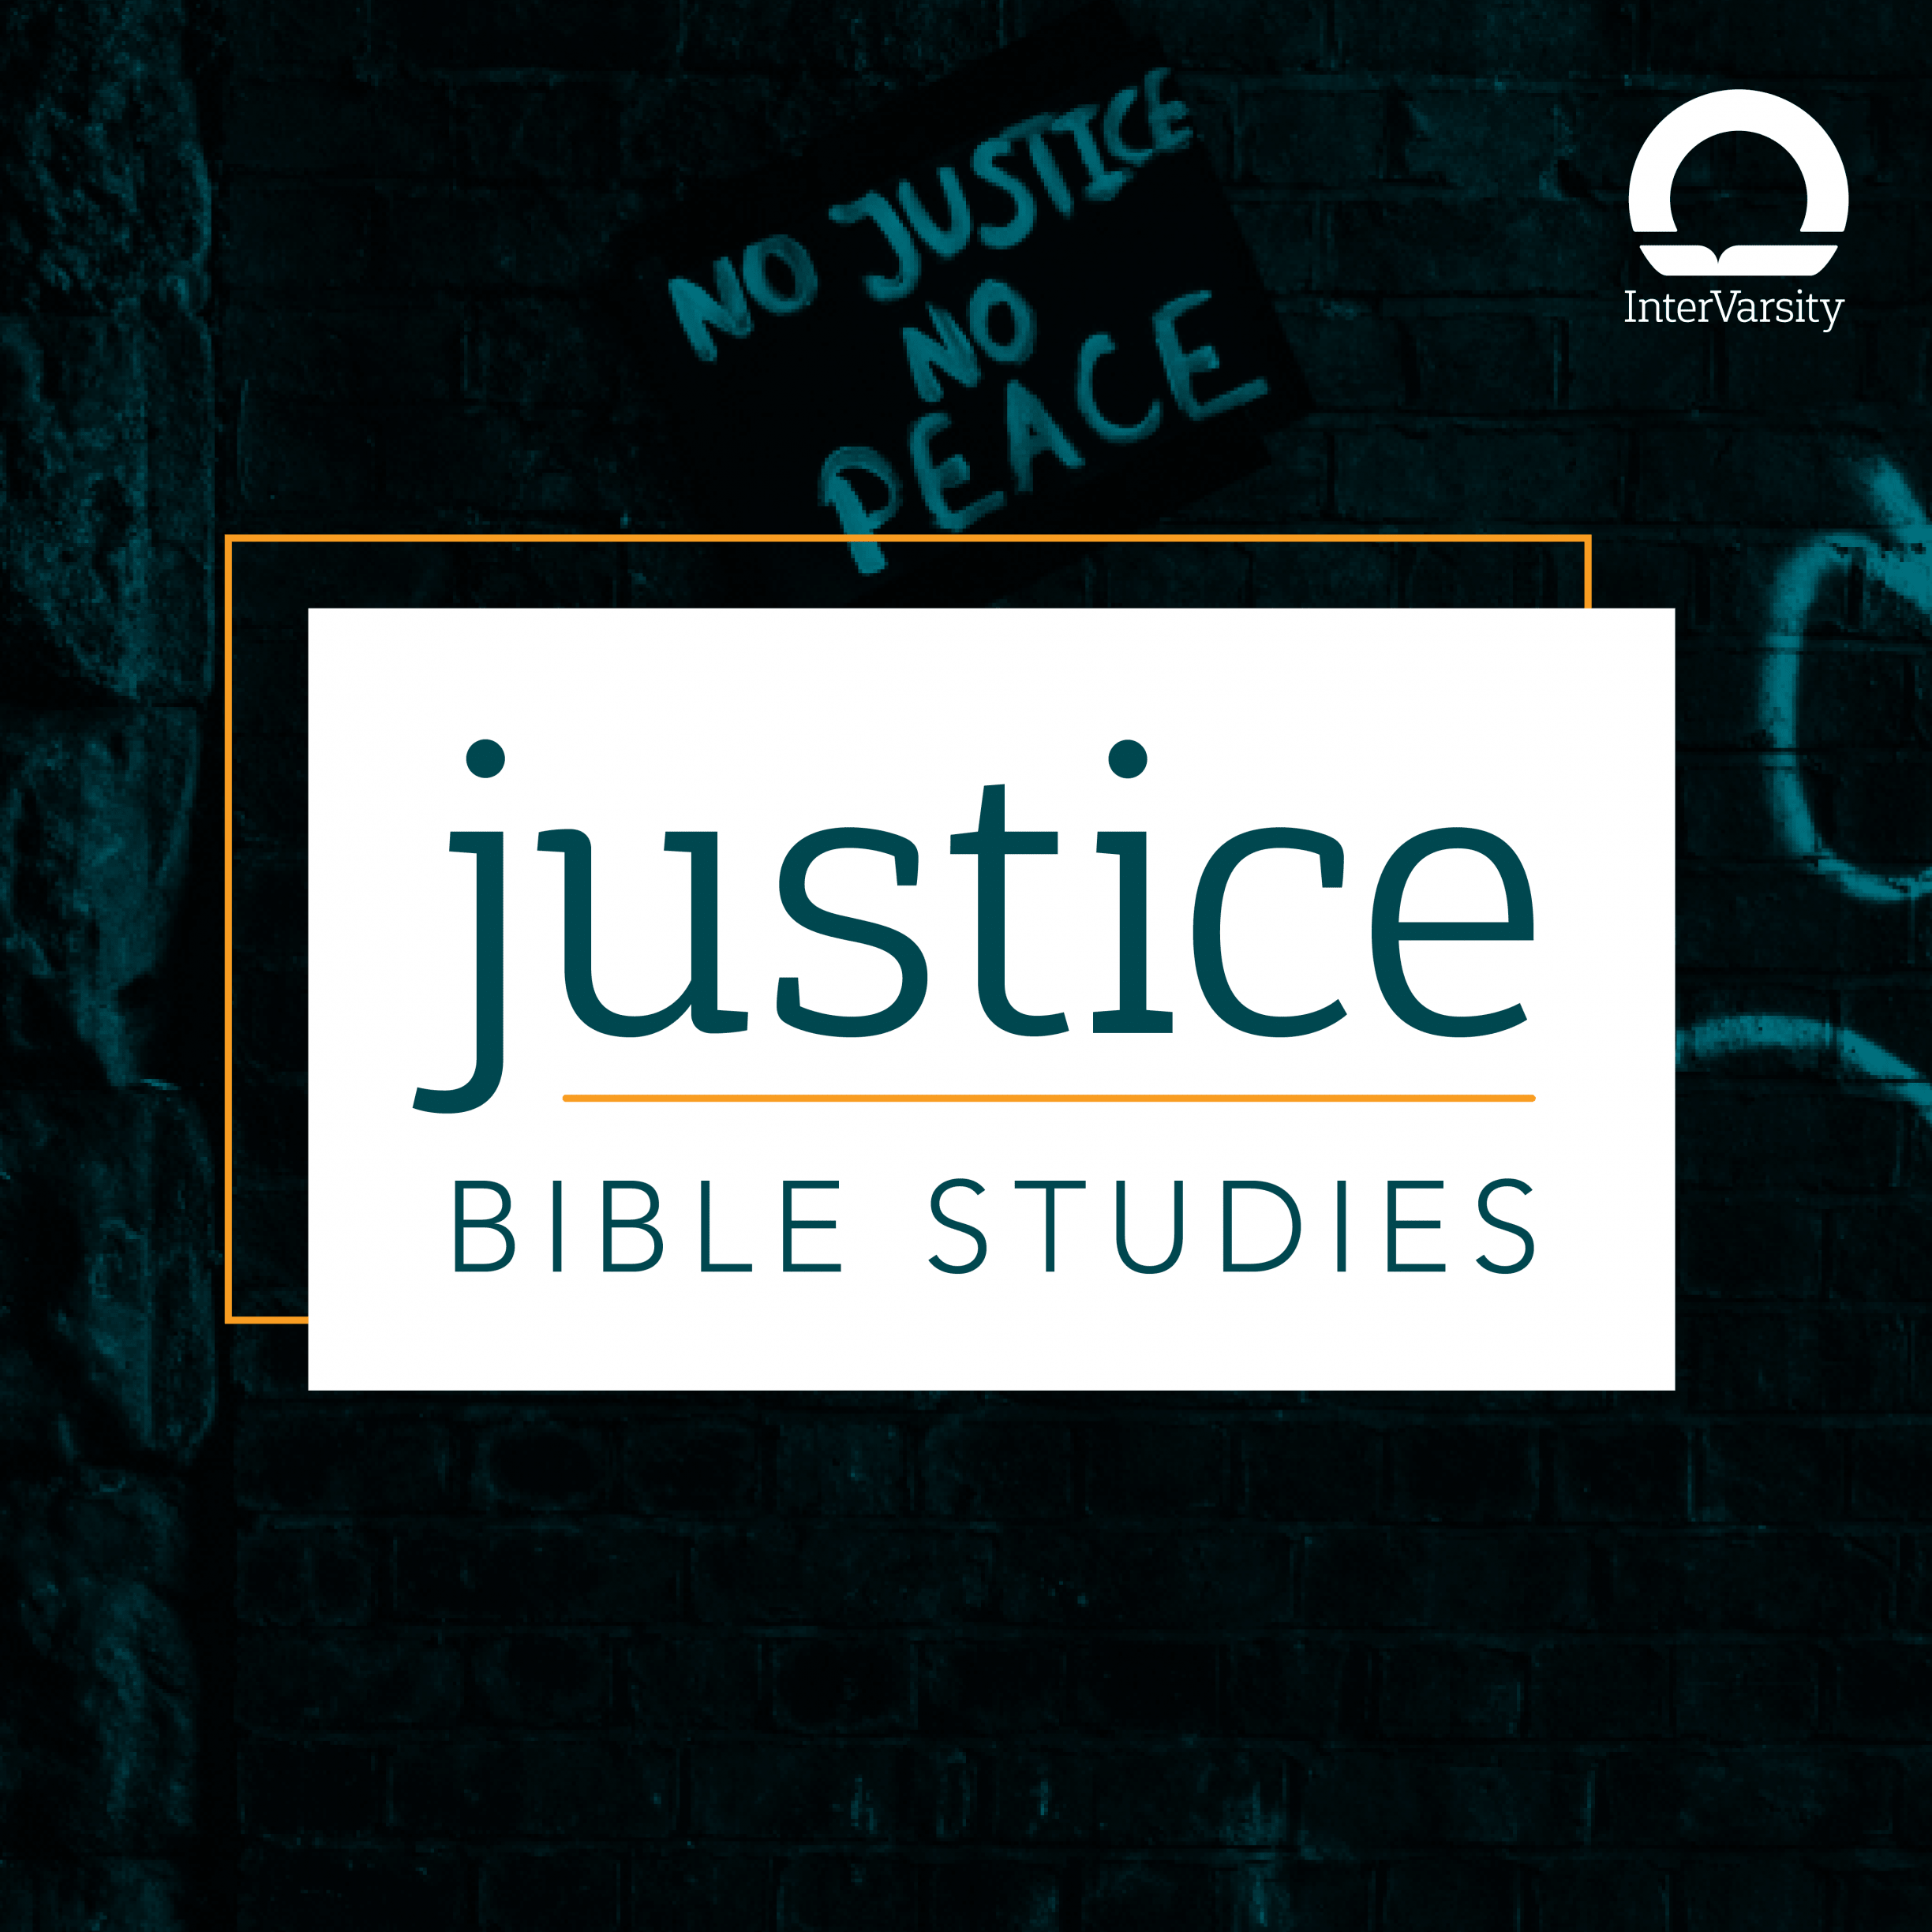 Justice Bible Studies graphic square background reading: No Justice, No Peace